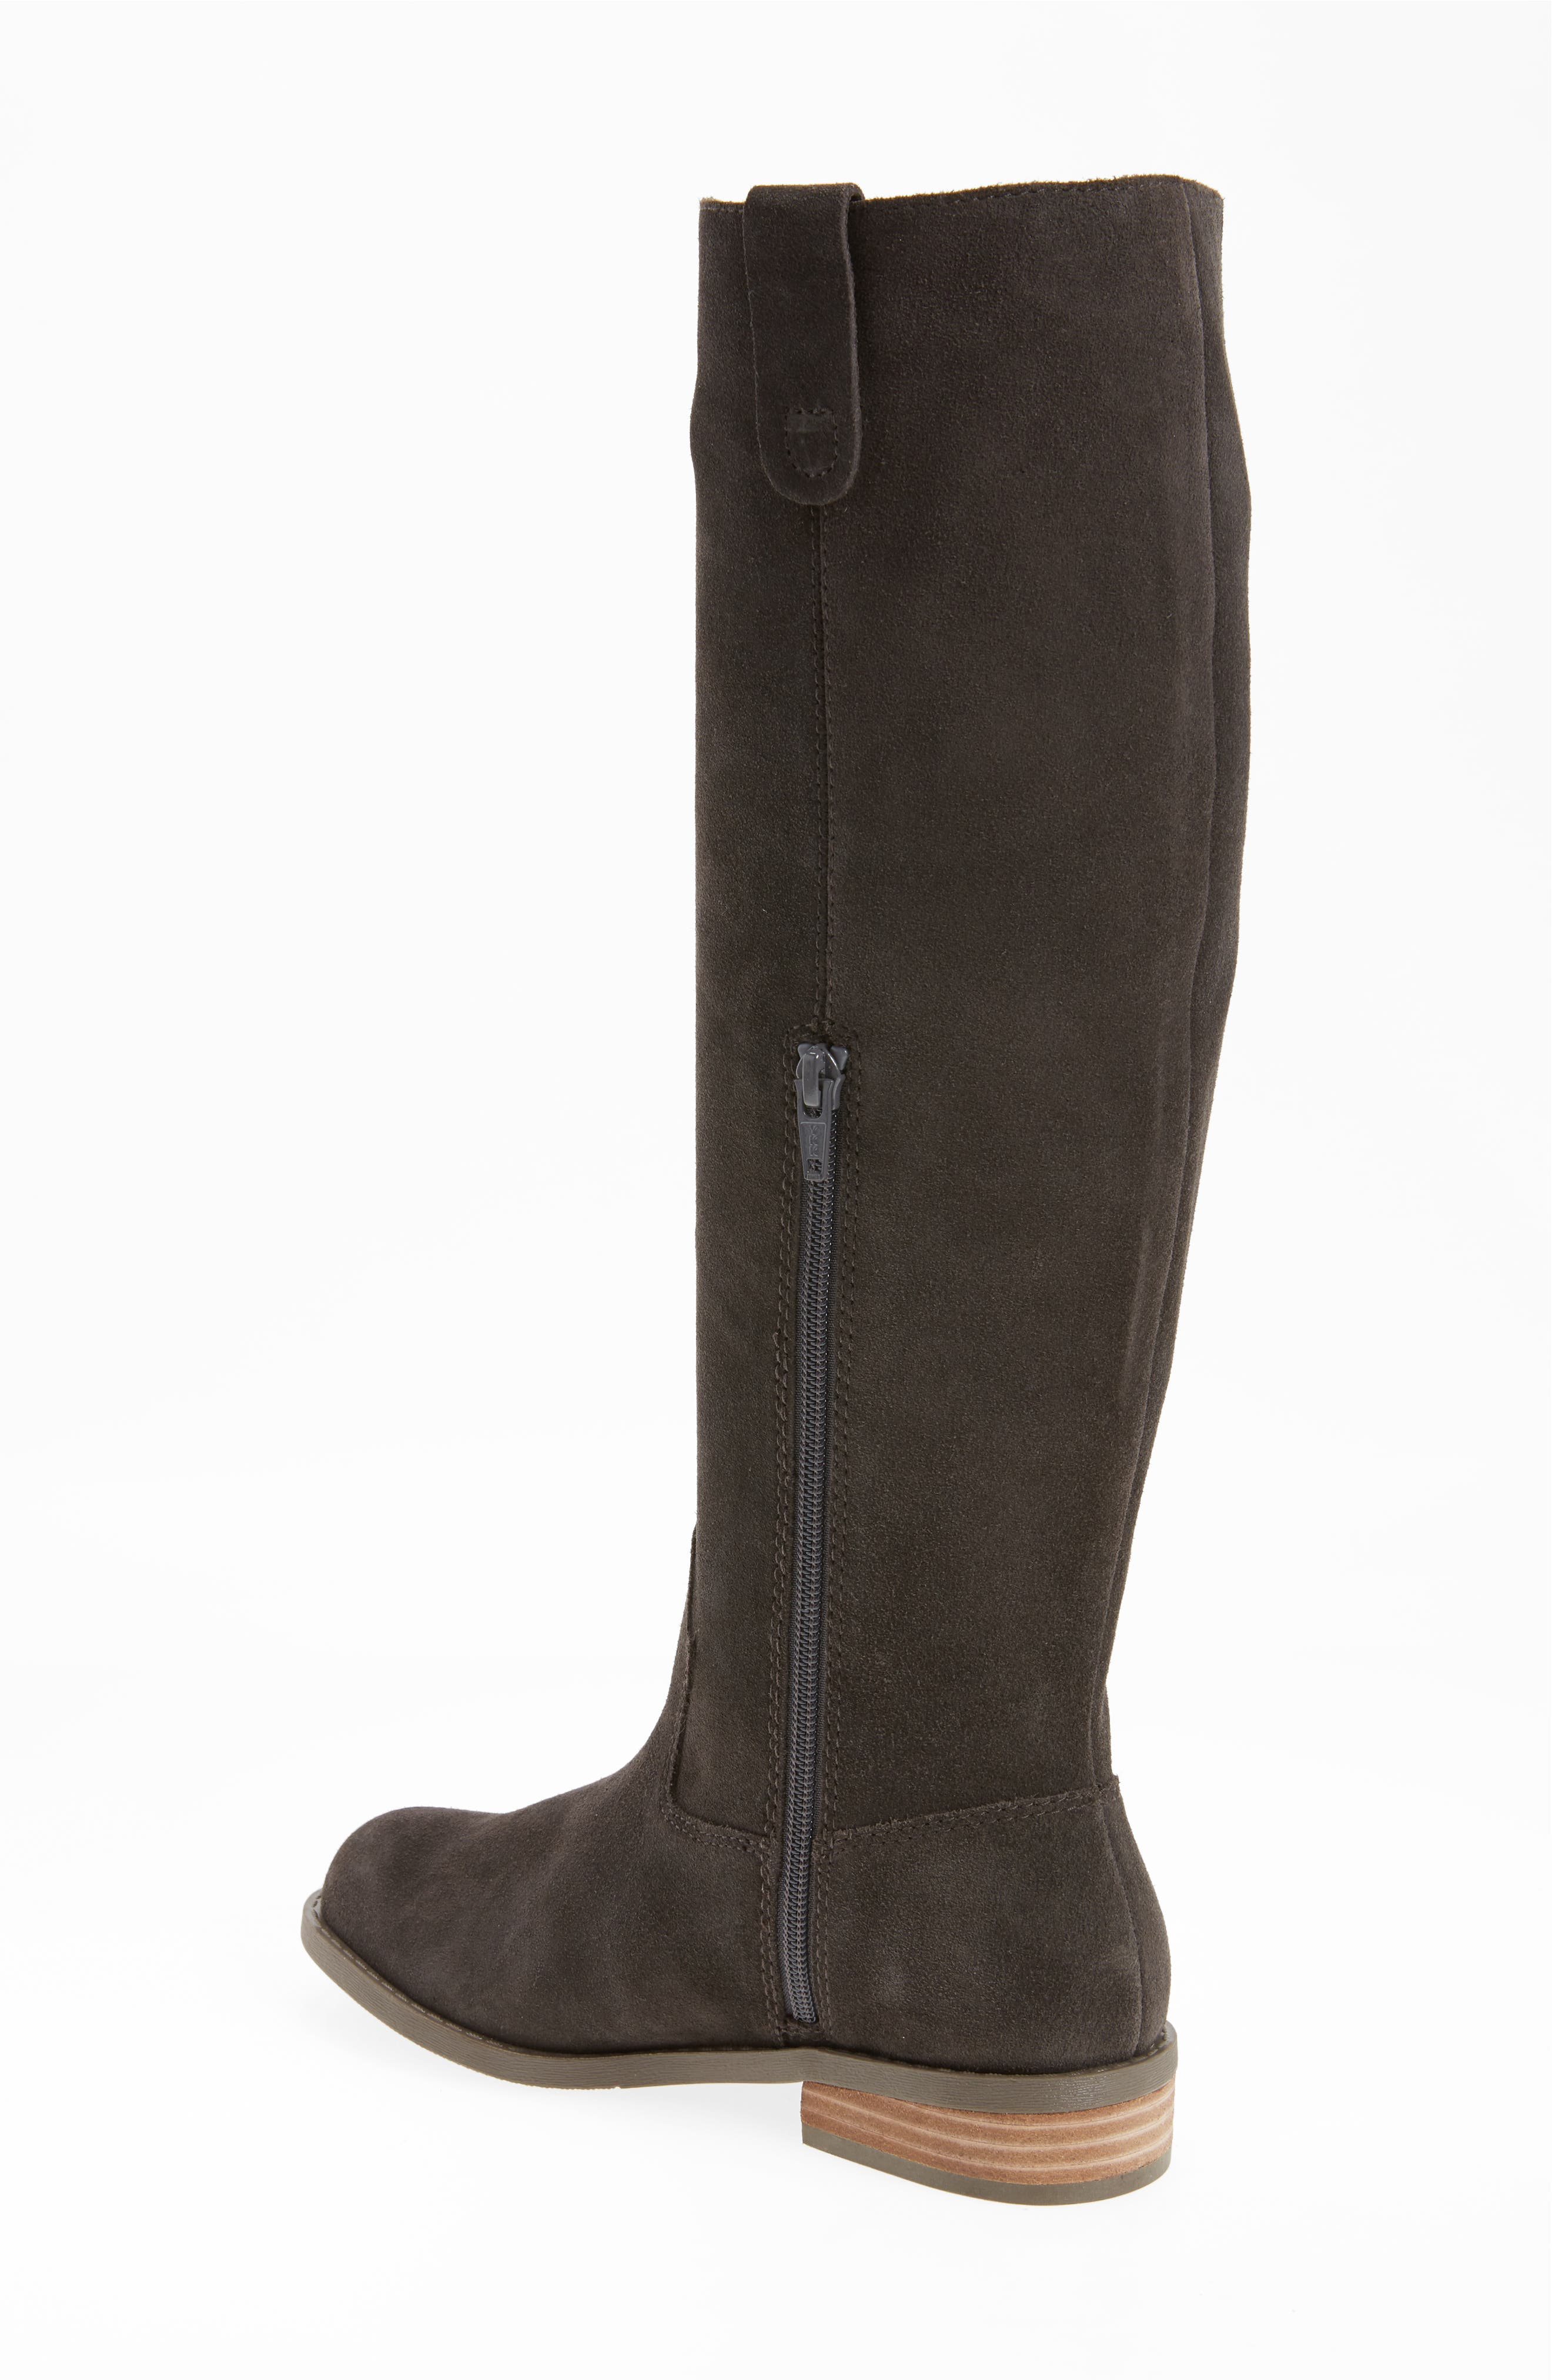 Hawn Knee High Boot,                             Alternate thumbnail 2, color,                             021